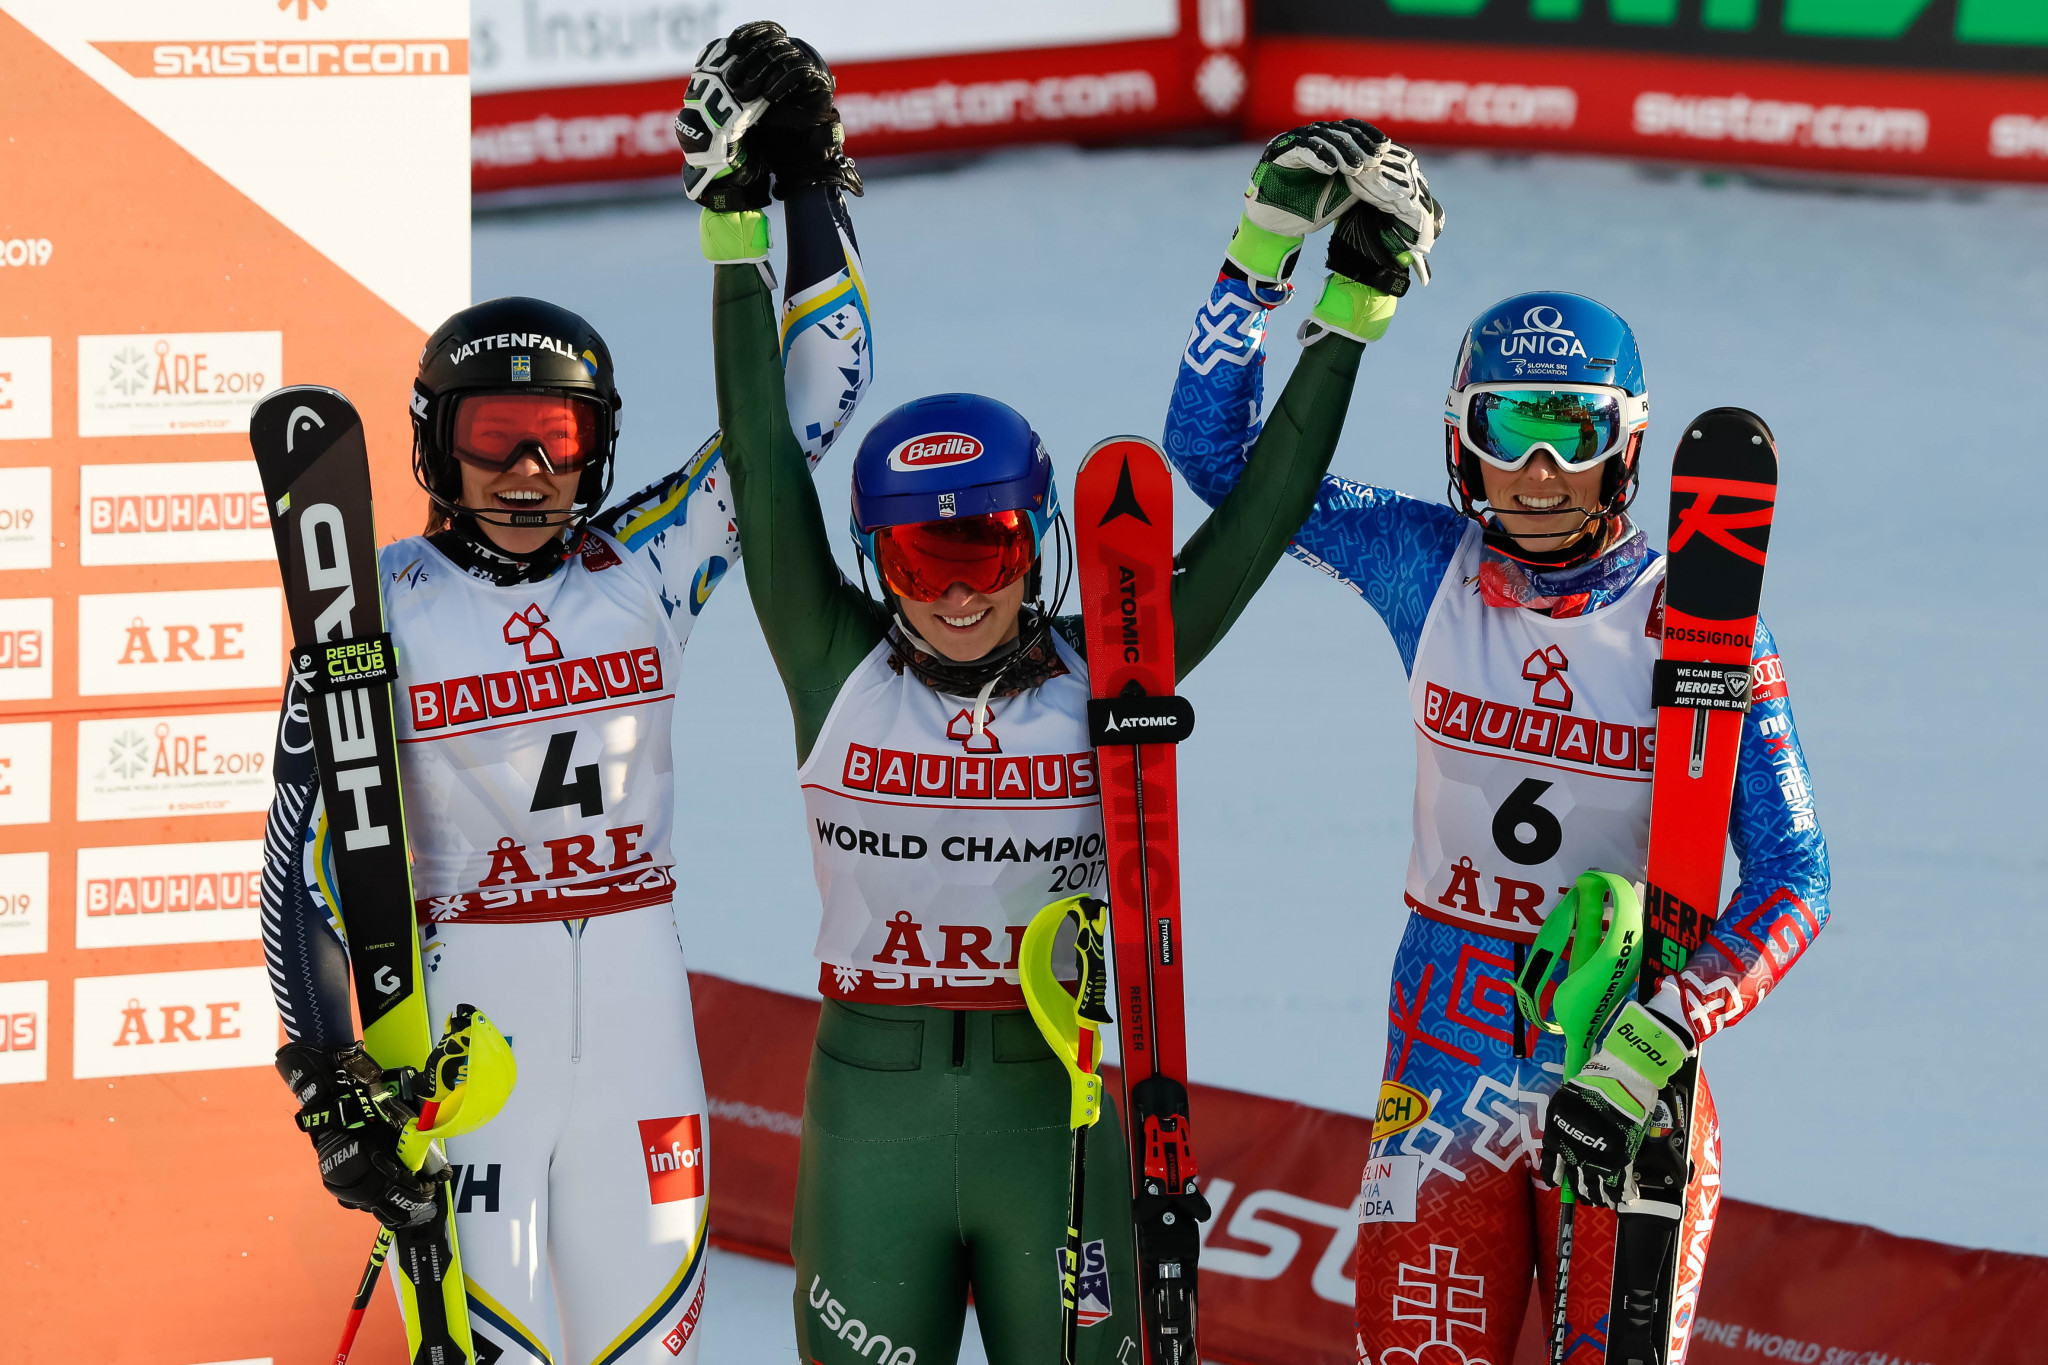 Mikaela Shiffrin triumphed in the women's slalom competition ©Getty Images